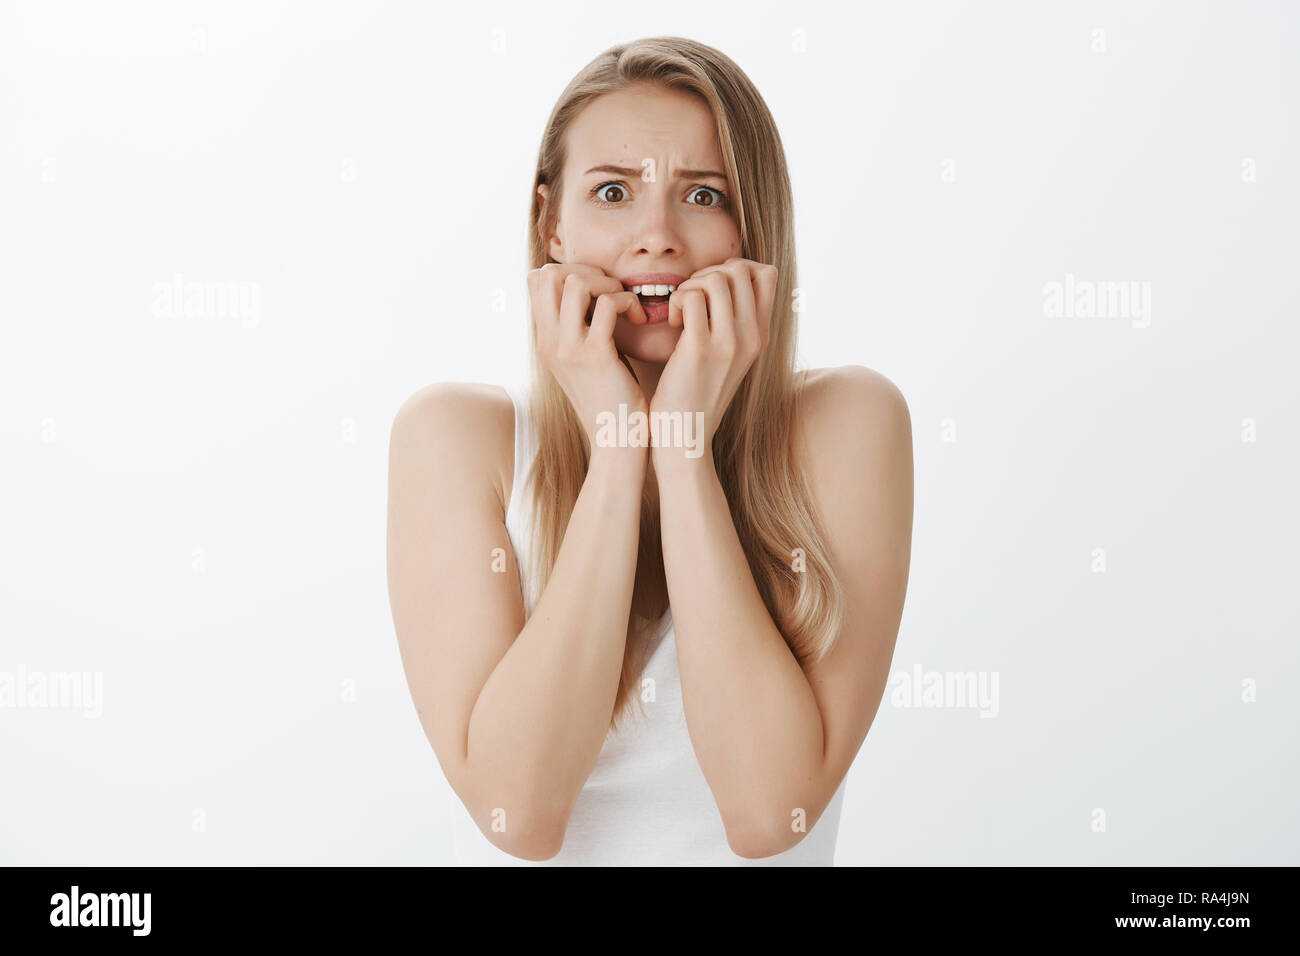 Waist-up shot of horrified panicking young insecure and attractive woman with blond hair and cute moles biting fingernails and frowning popping eyes at camera scared and timid over gray wall - Stock Image